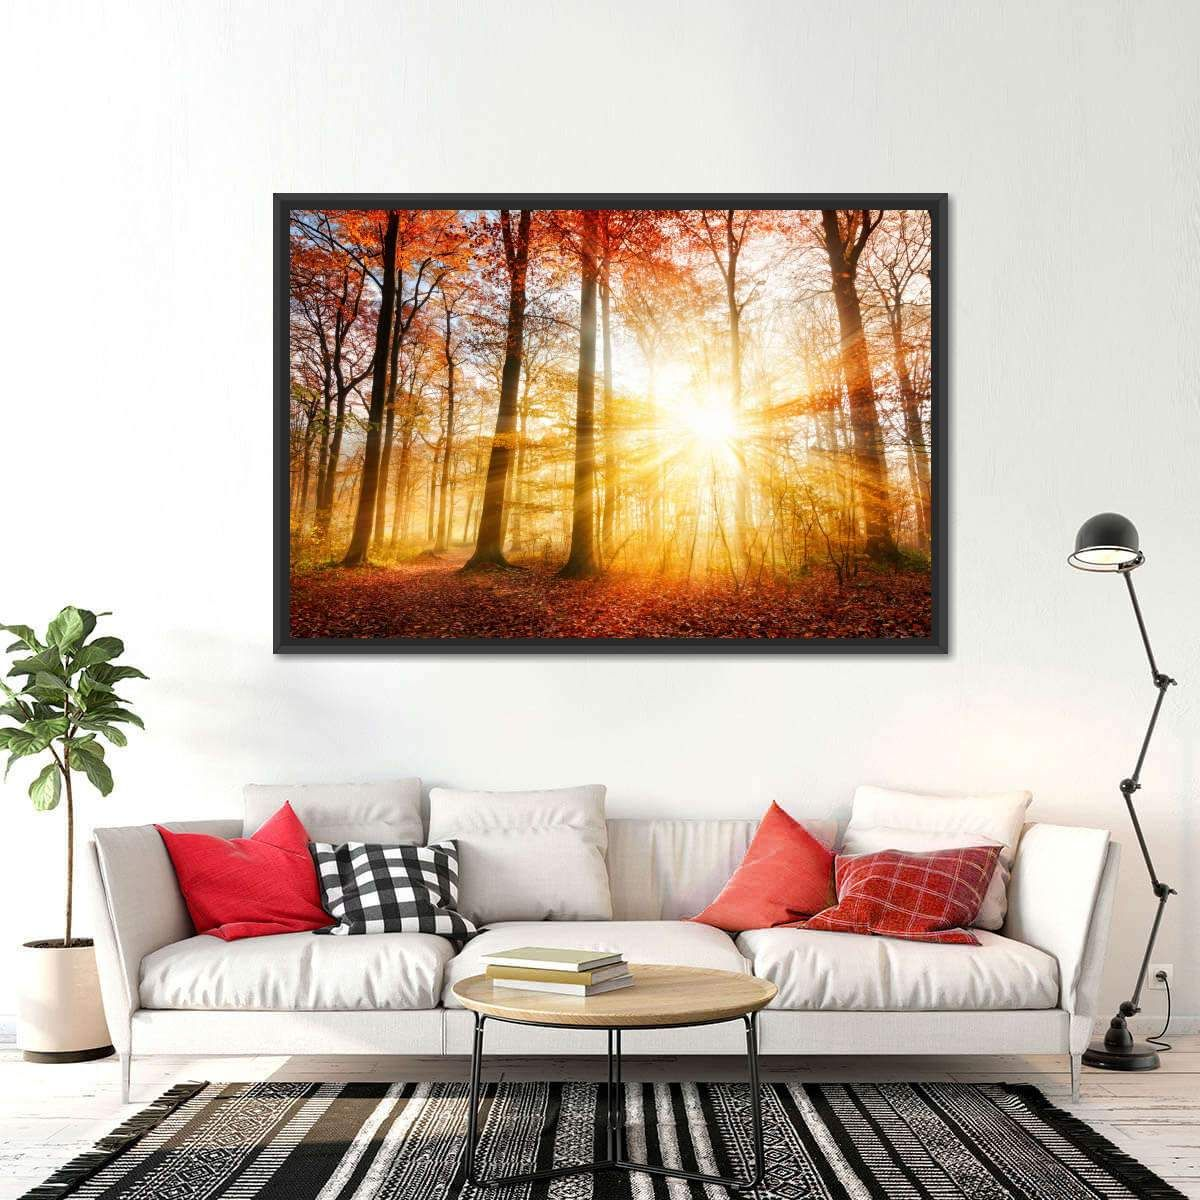 Forest Autumn Sunrays will refresh your mind and soul whenever you stop and stare at it. This high-quality art print will complement any room in your home and soothe your senses with nature's beauty.